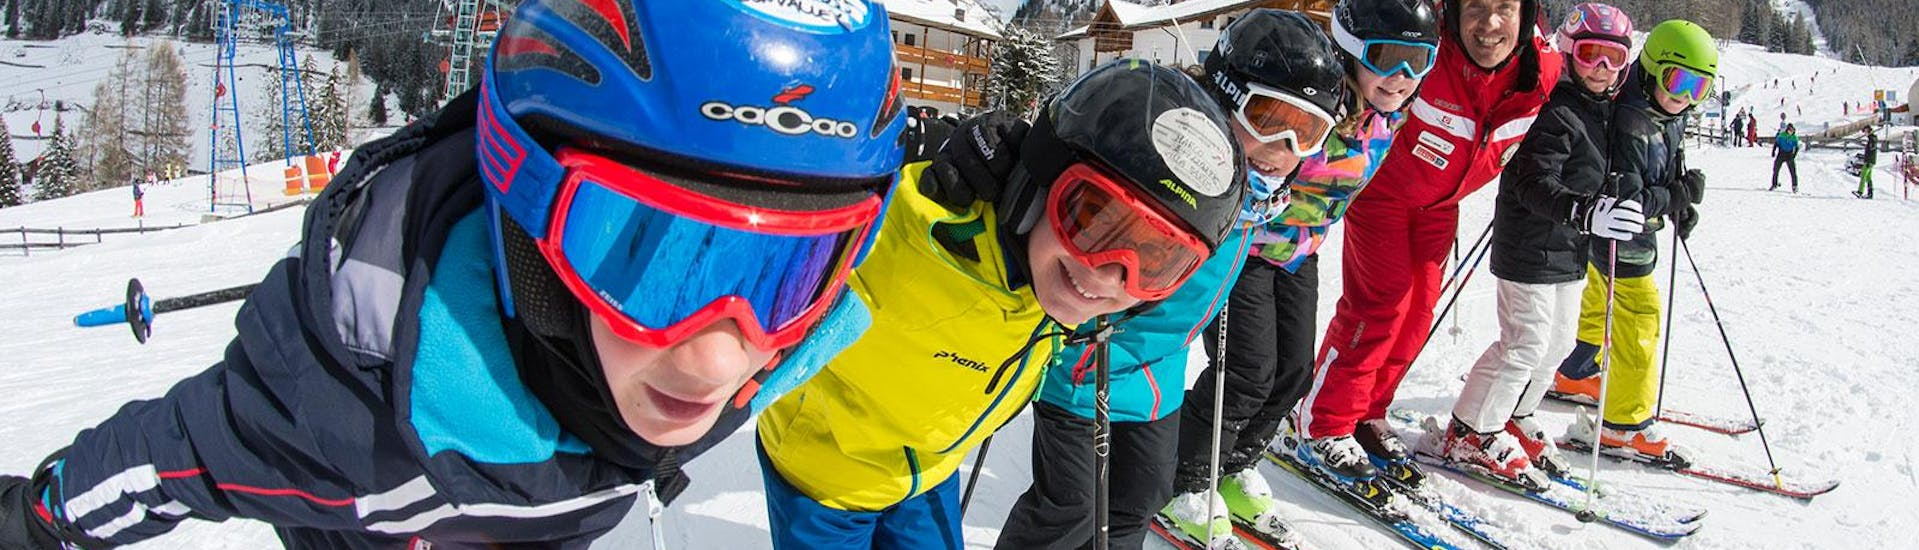 Kids Ski Lessons for Advanced Skiers (4-12 y.) - Full-Day with Ski and Snowboard School Selva Val Gardena - Hero image